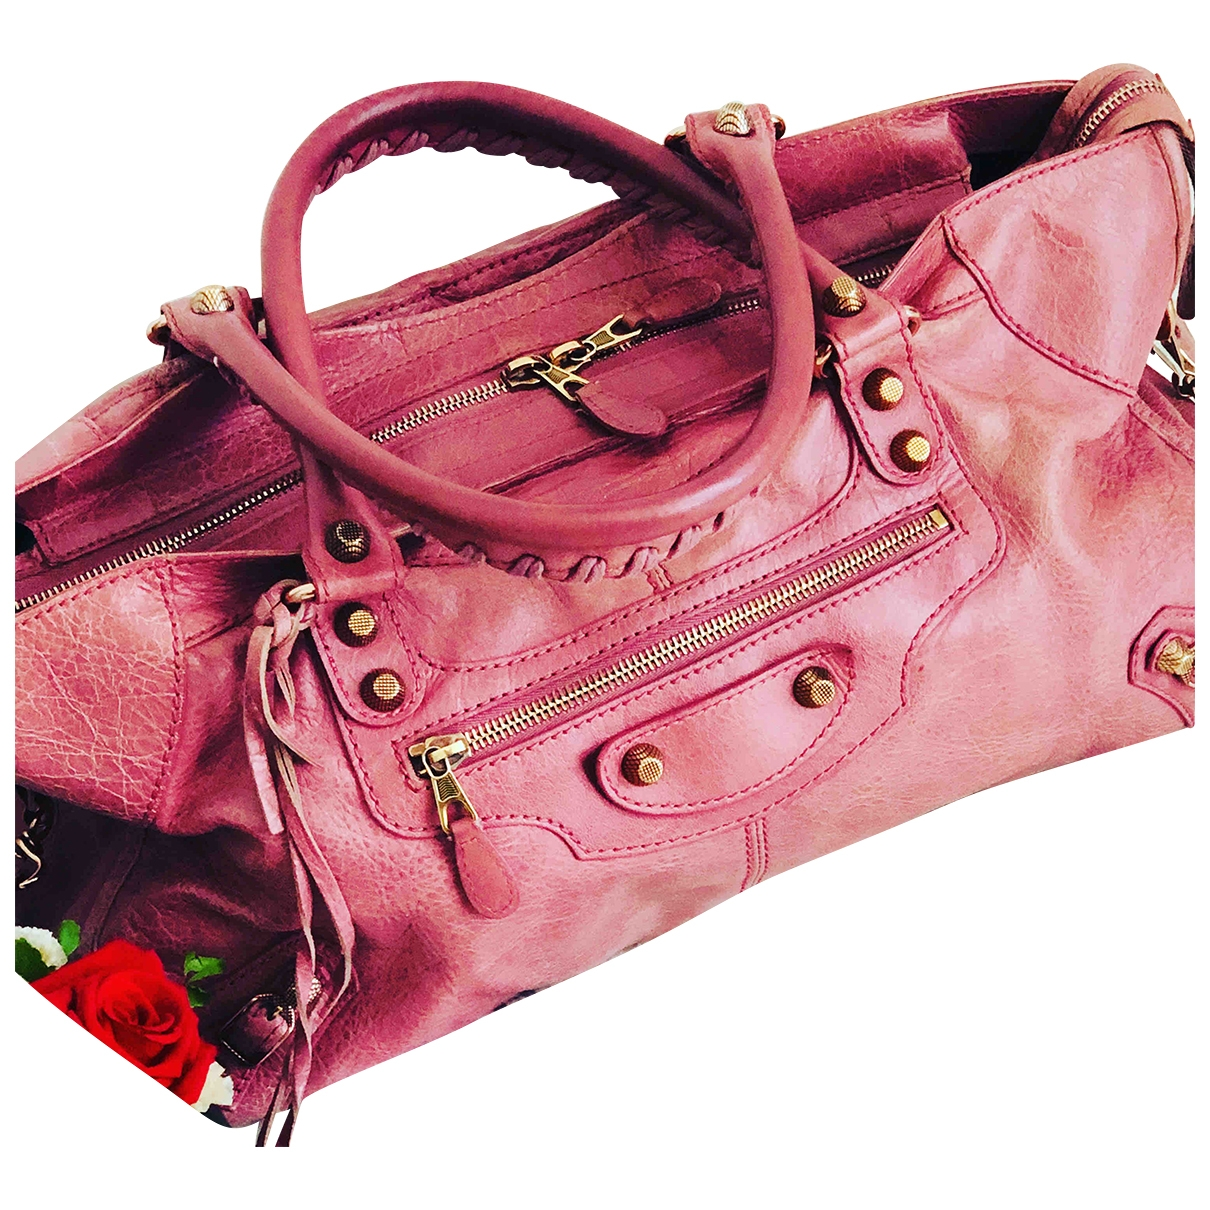 Balenciaga City Pink Leather handbag for Women \N